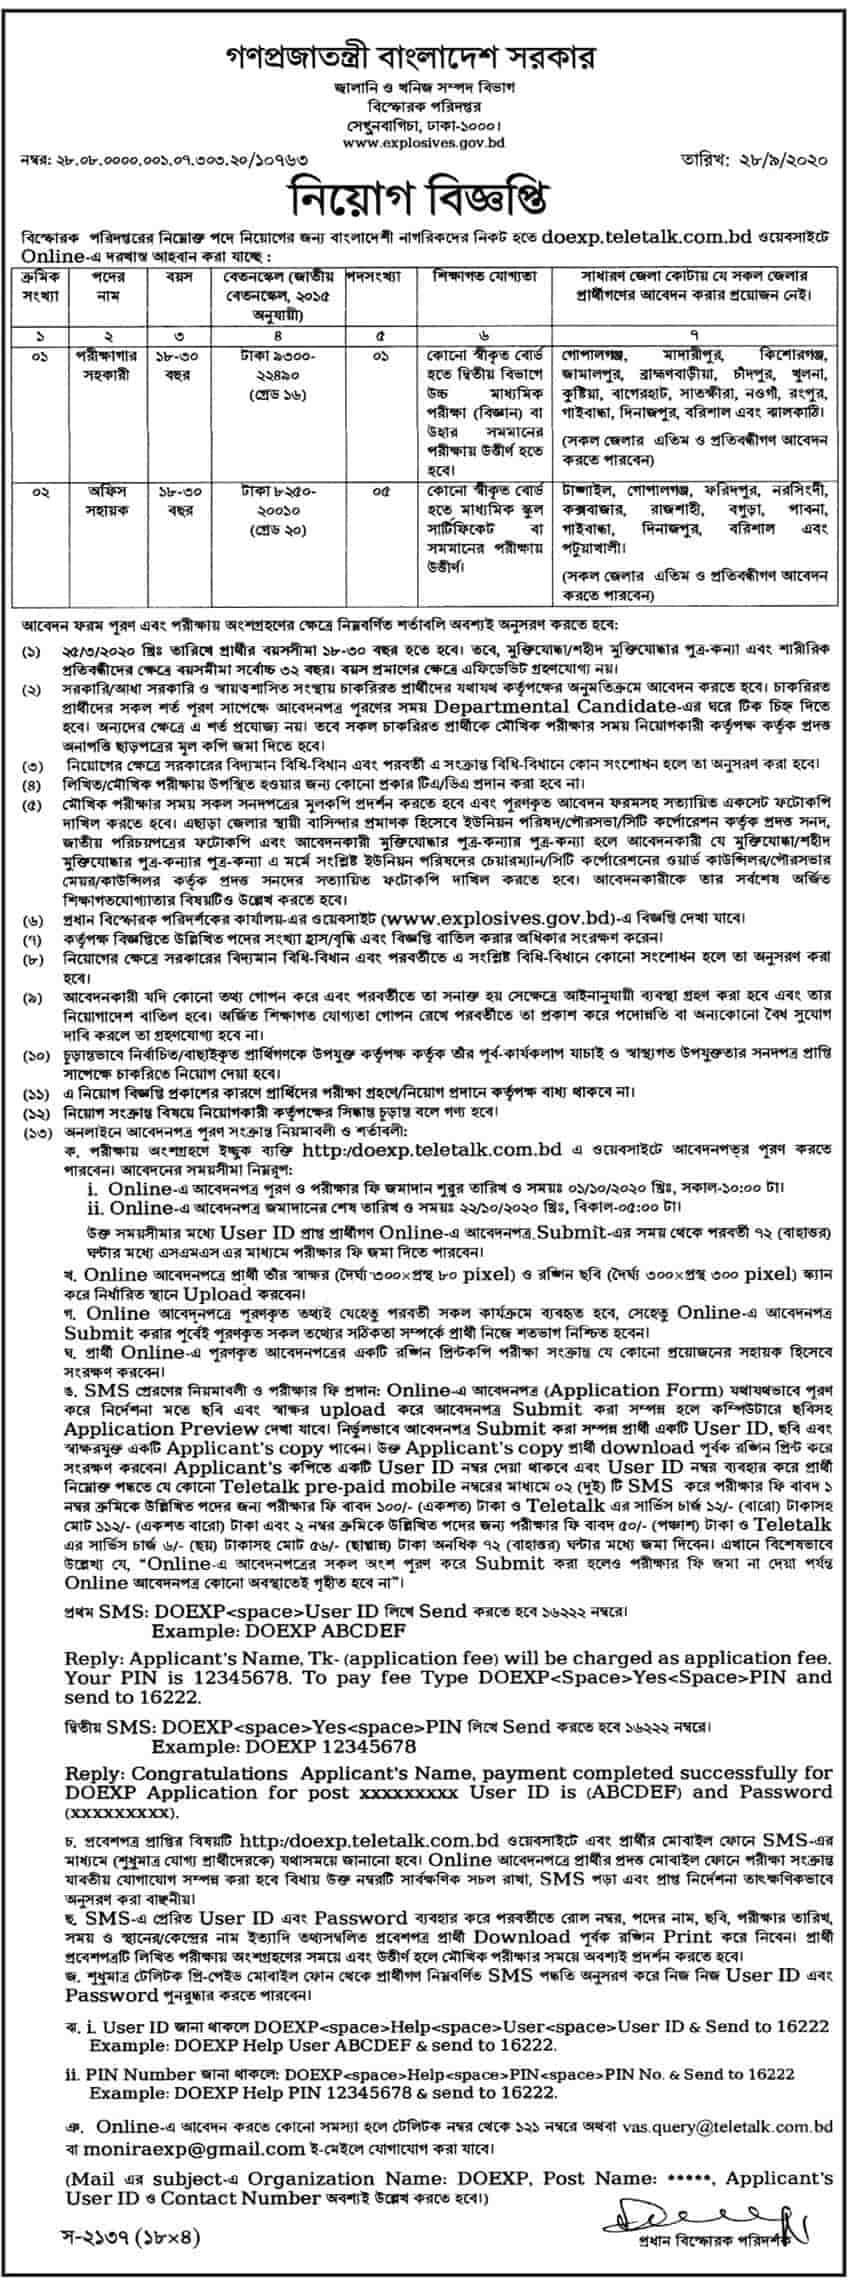 Ministry-of-Power-Energy-and-Mineral-Resources-Job-Circular-2020